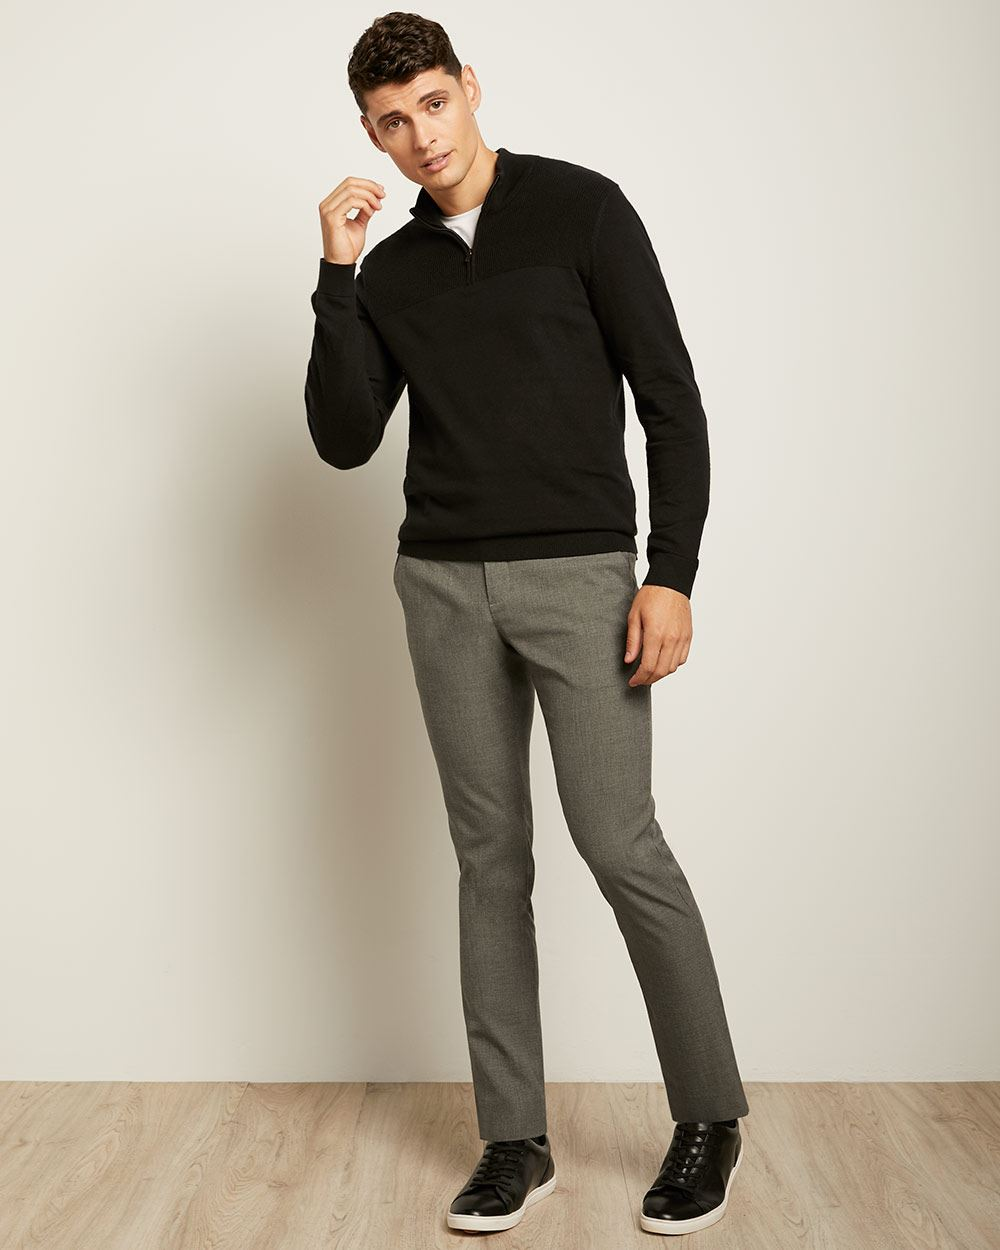 Zipped Mock-Neck Sweater with Textured Stitch